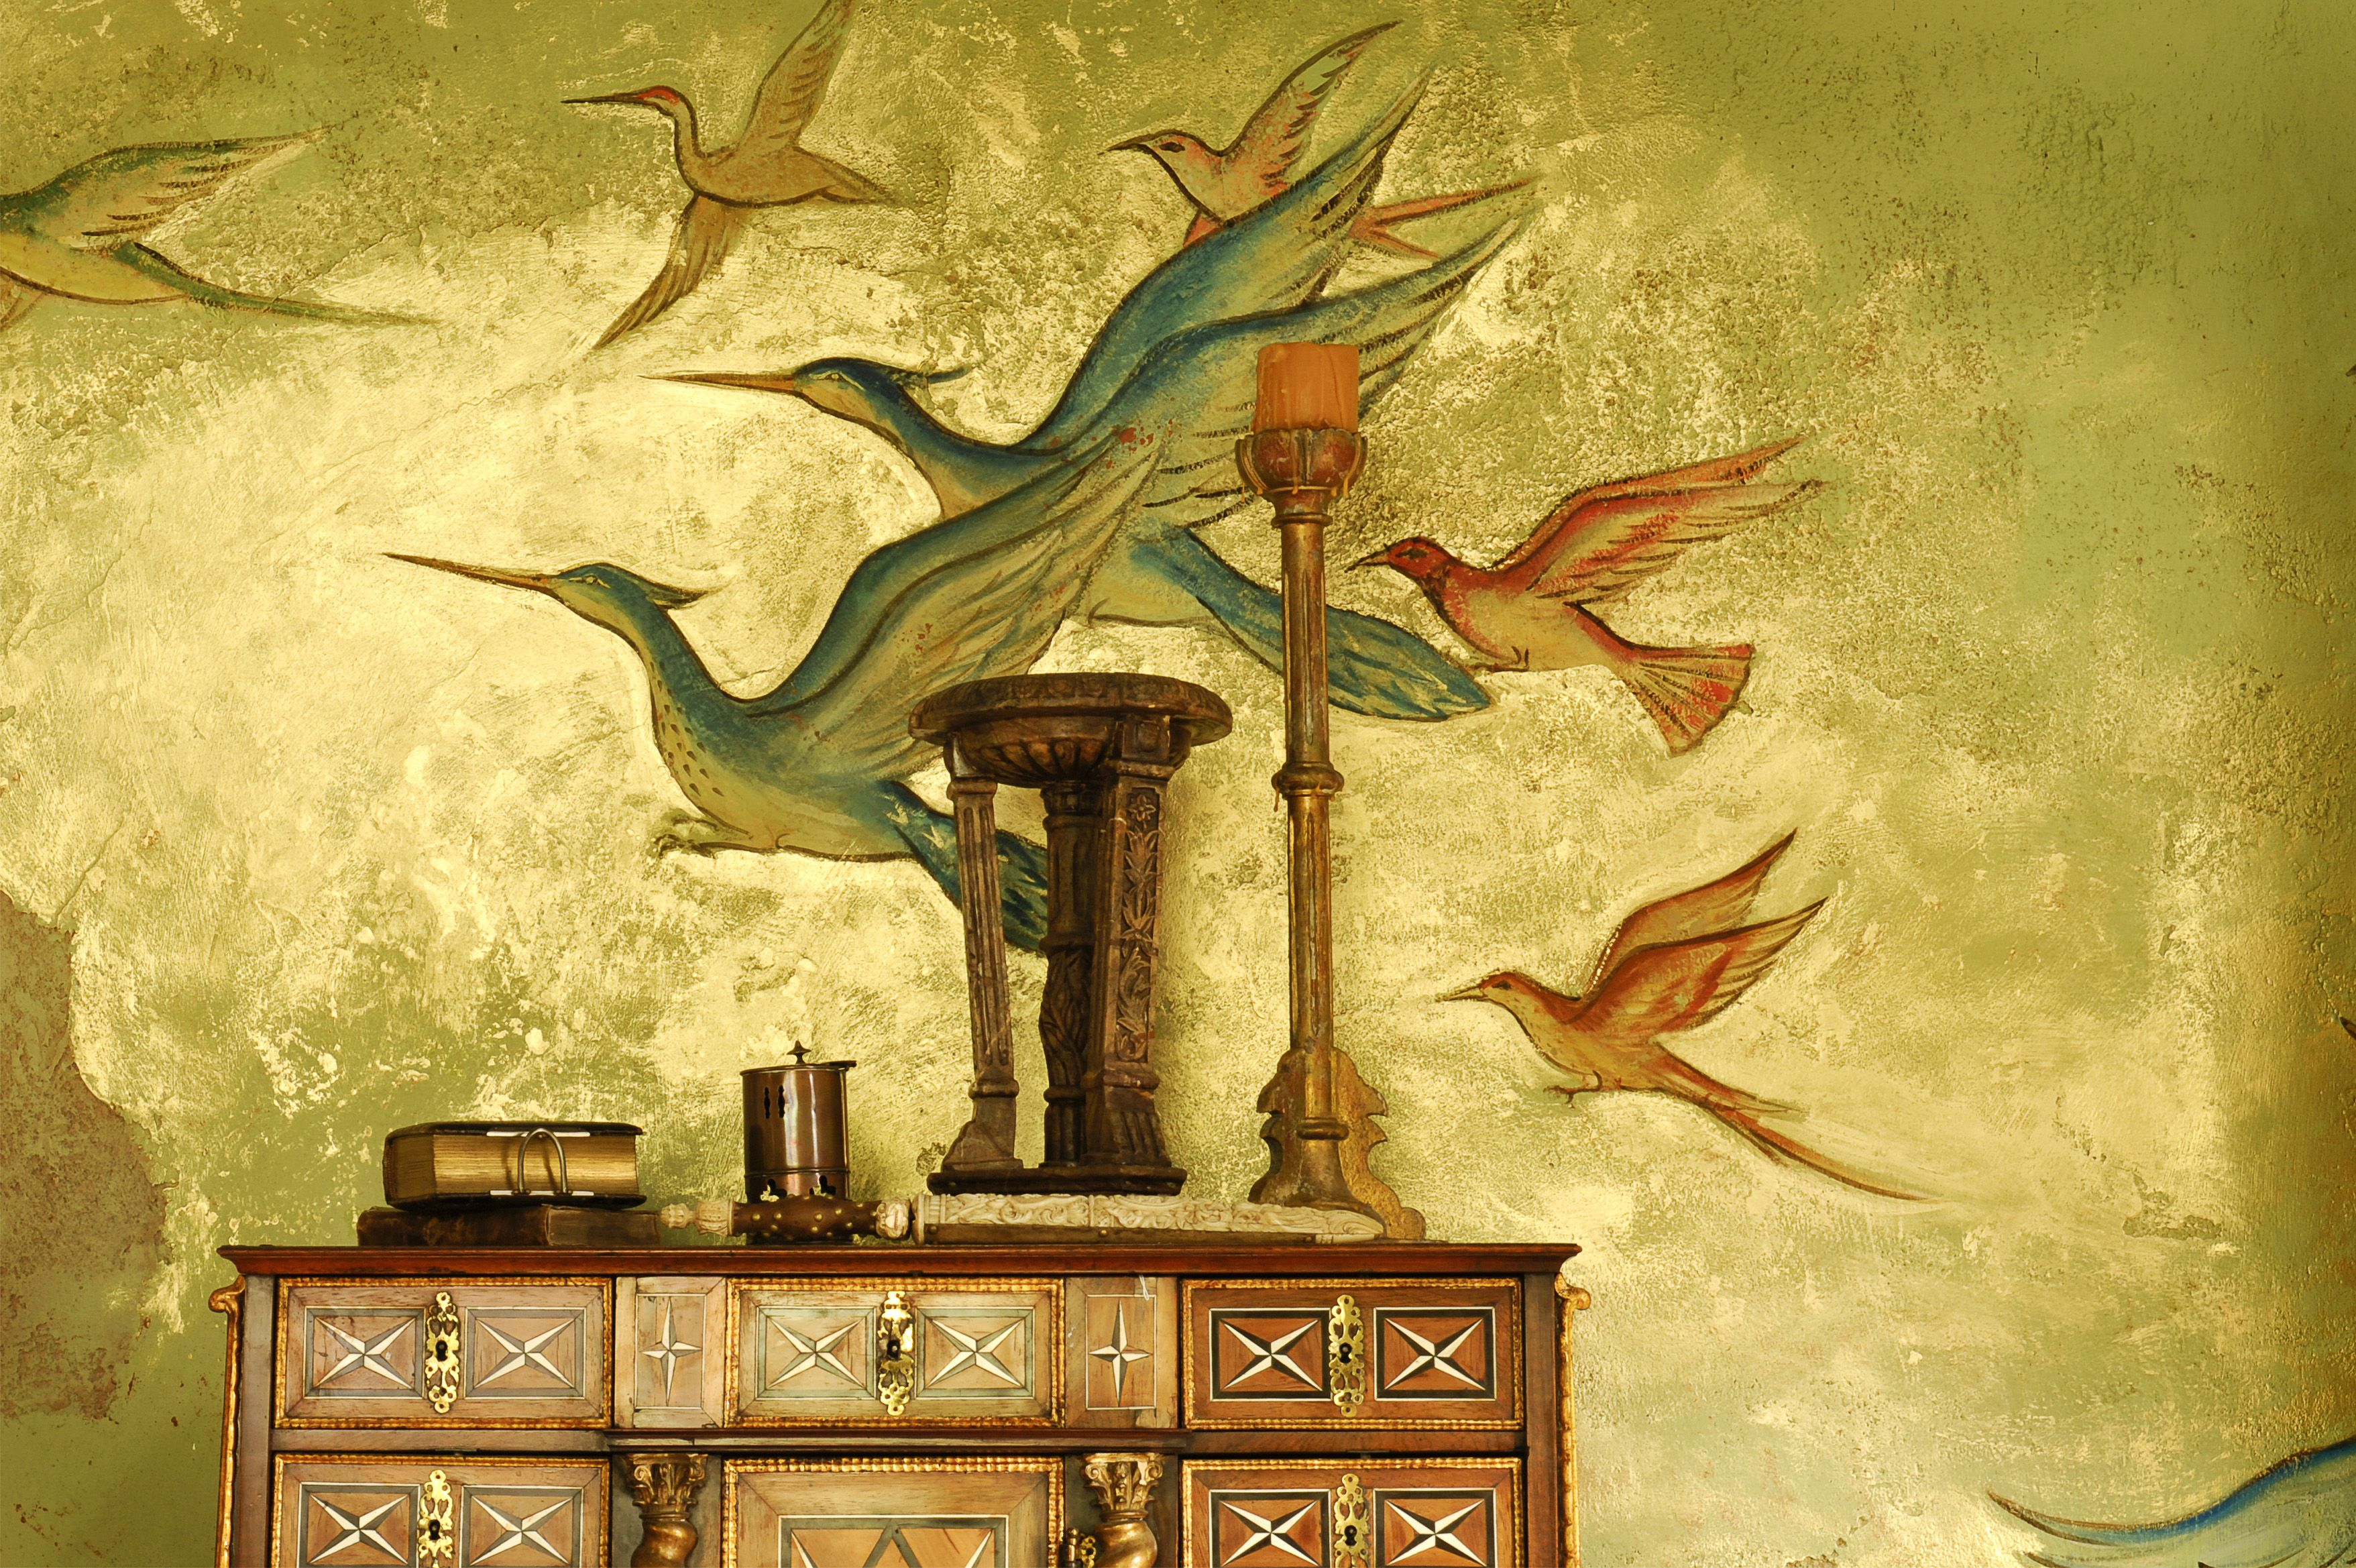 Mural in the Red Keep | Bedchambers | Pinterest | Hbo series, Walls ...